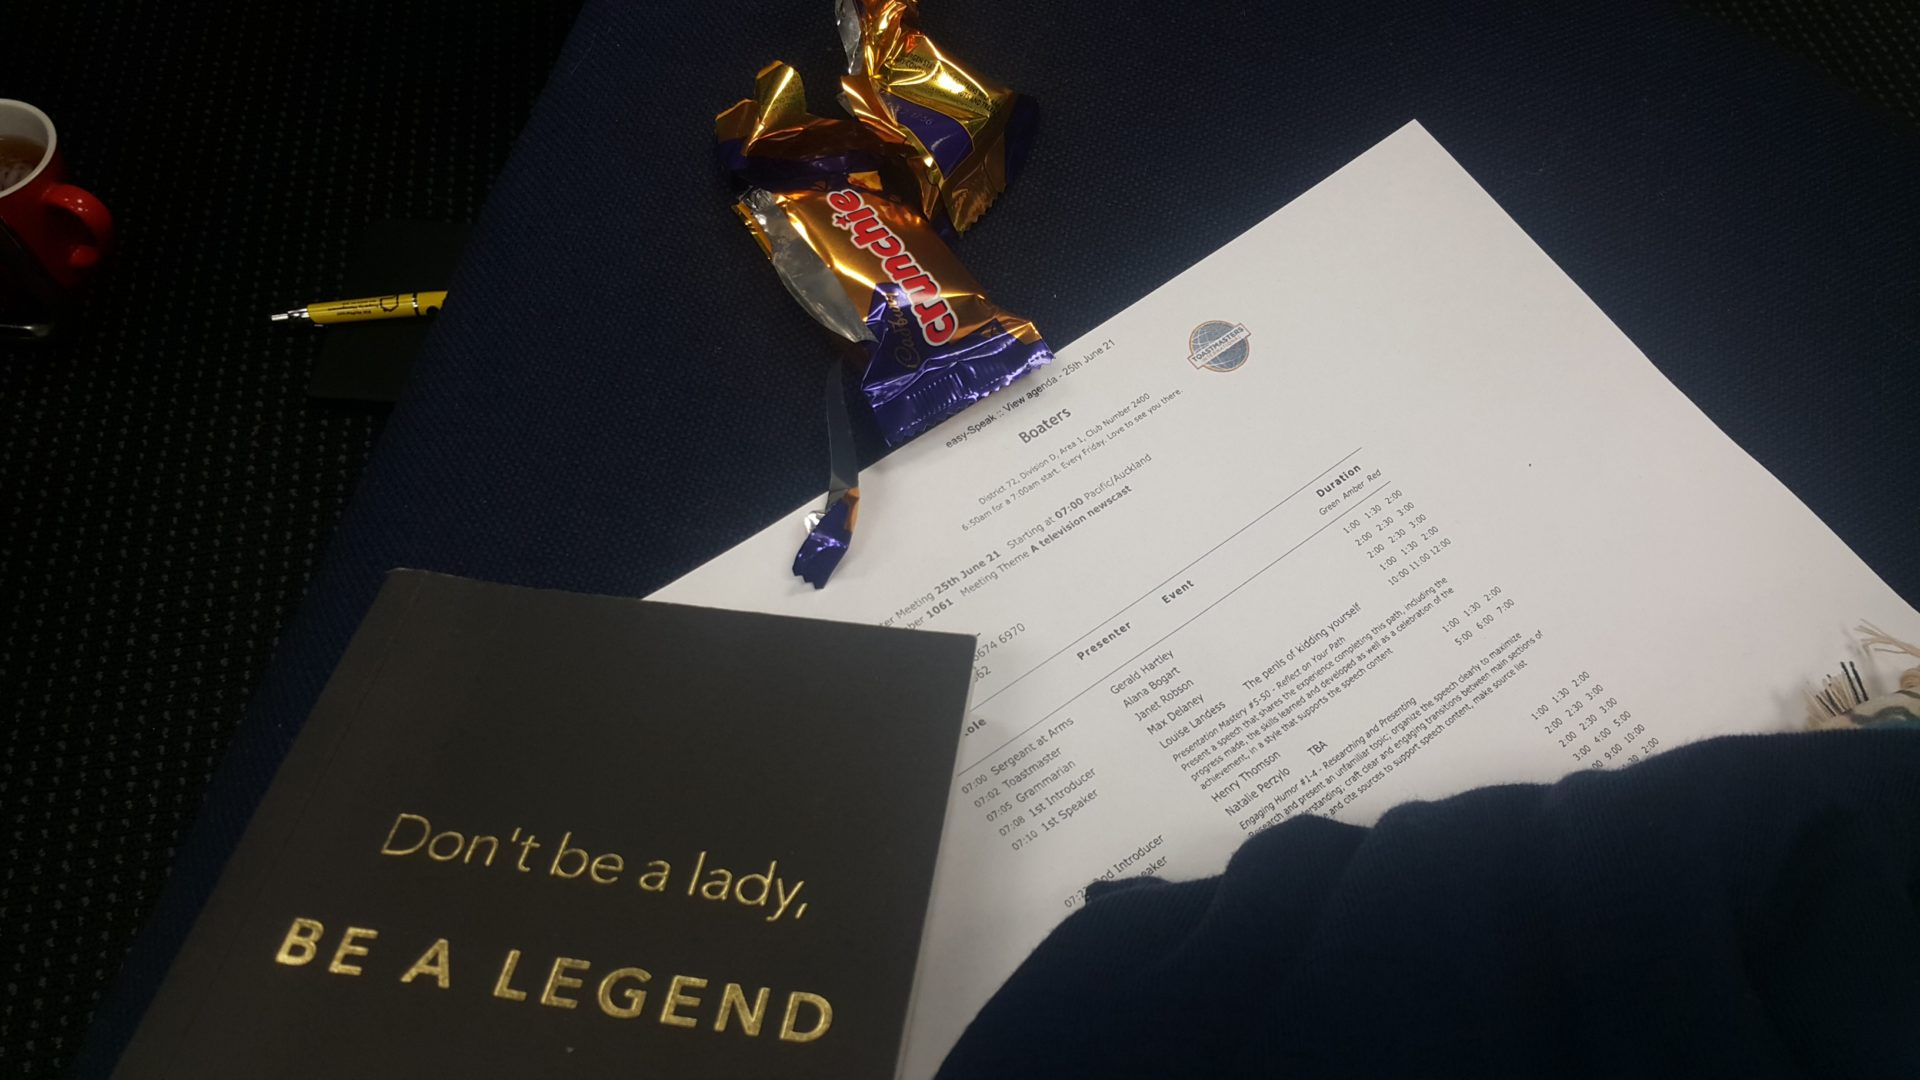 Notebook, printed agenda and chocolate bar wrapper on a chair